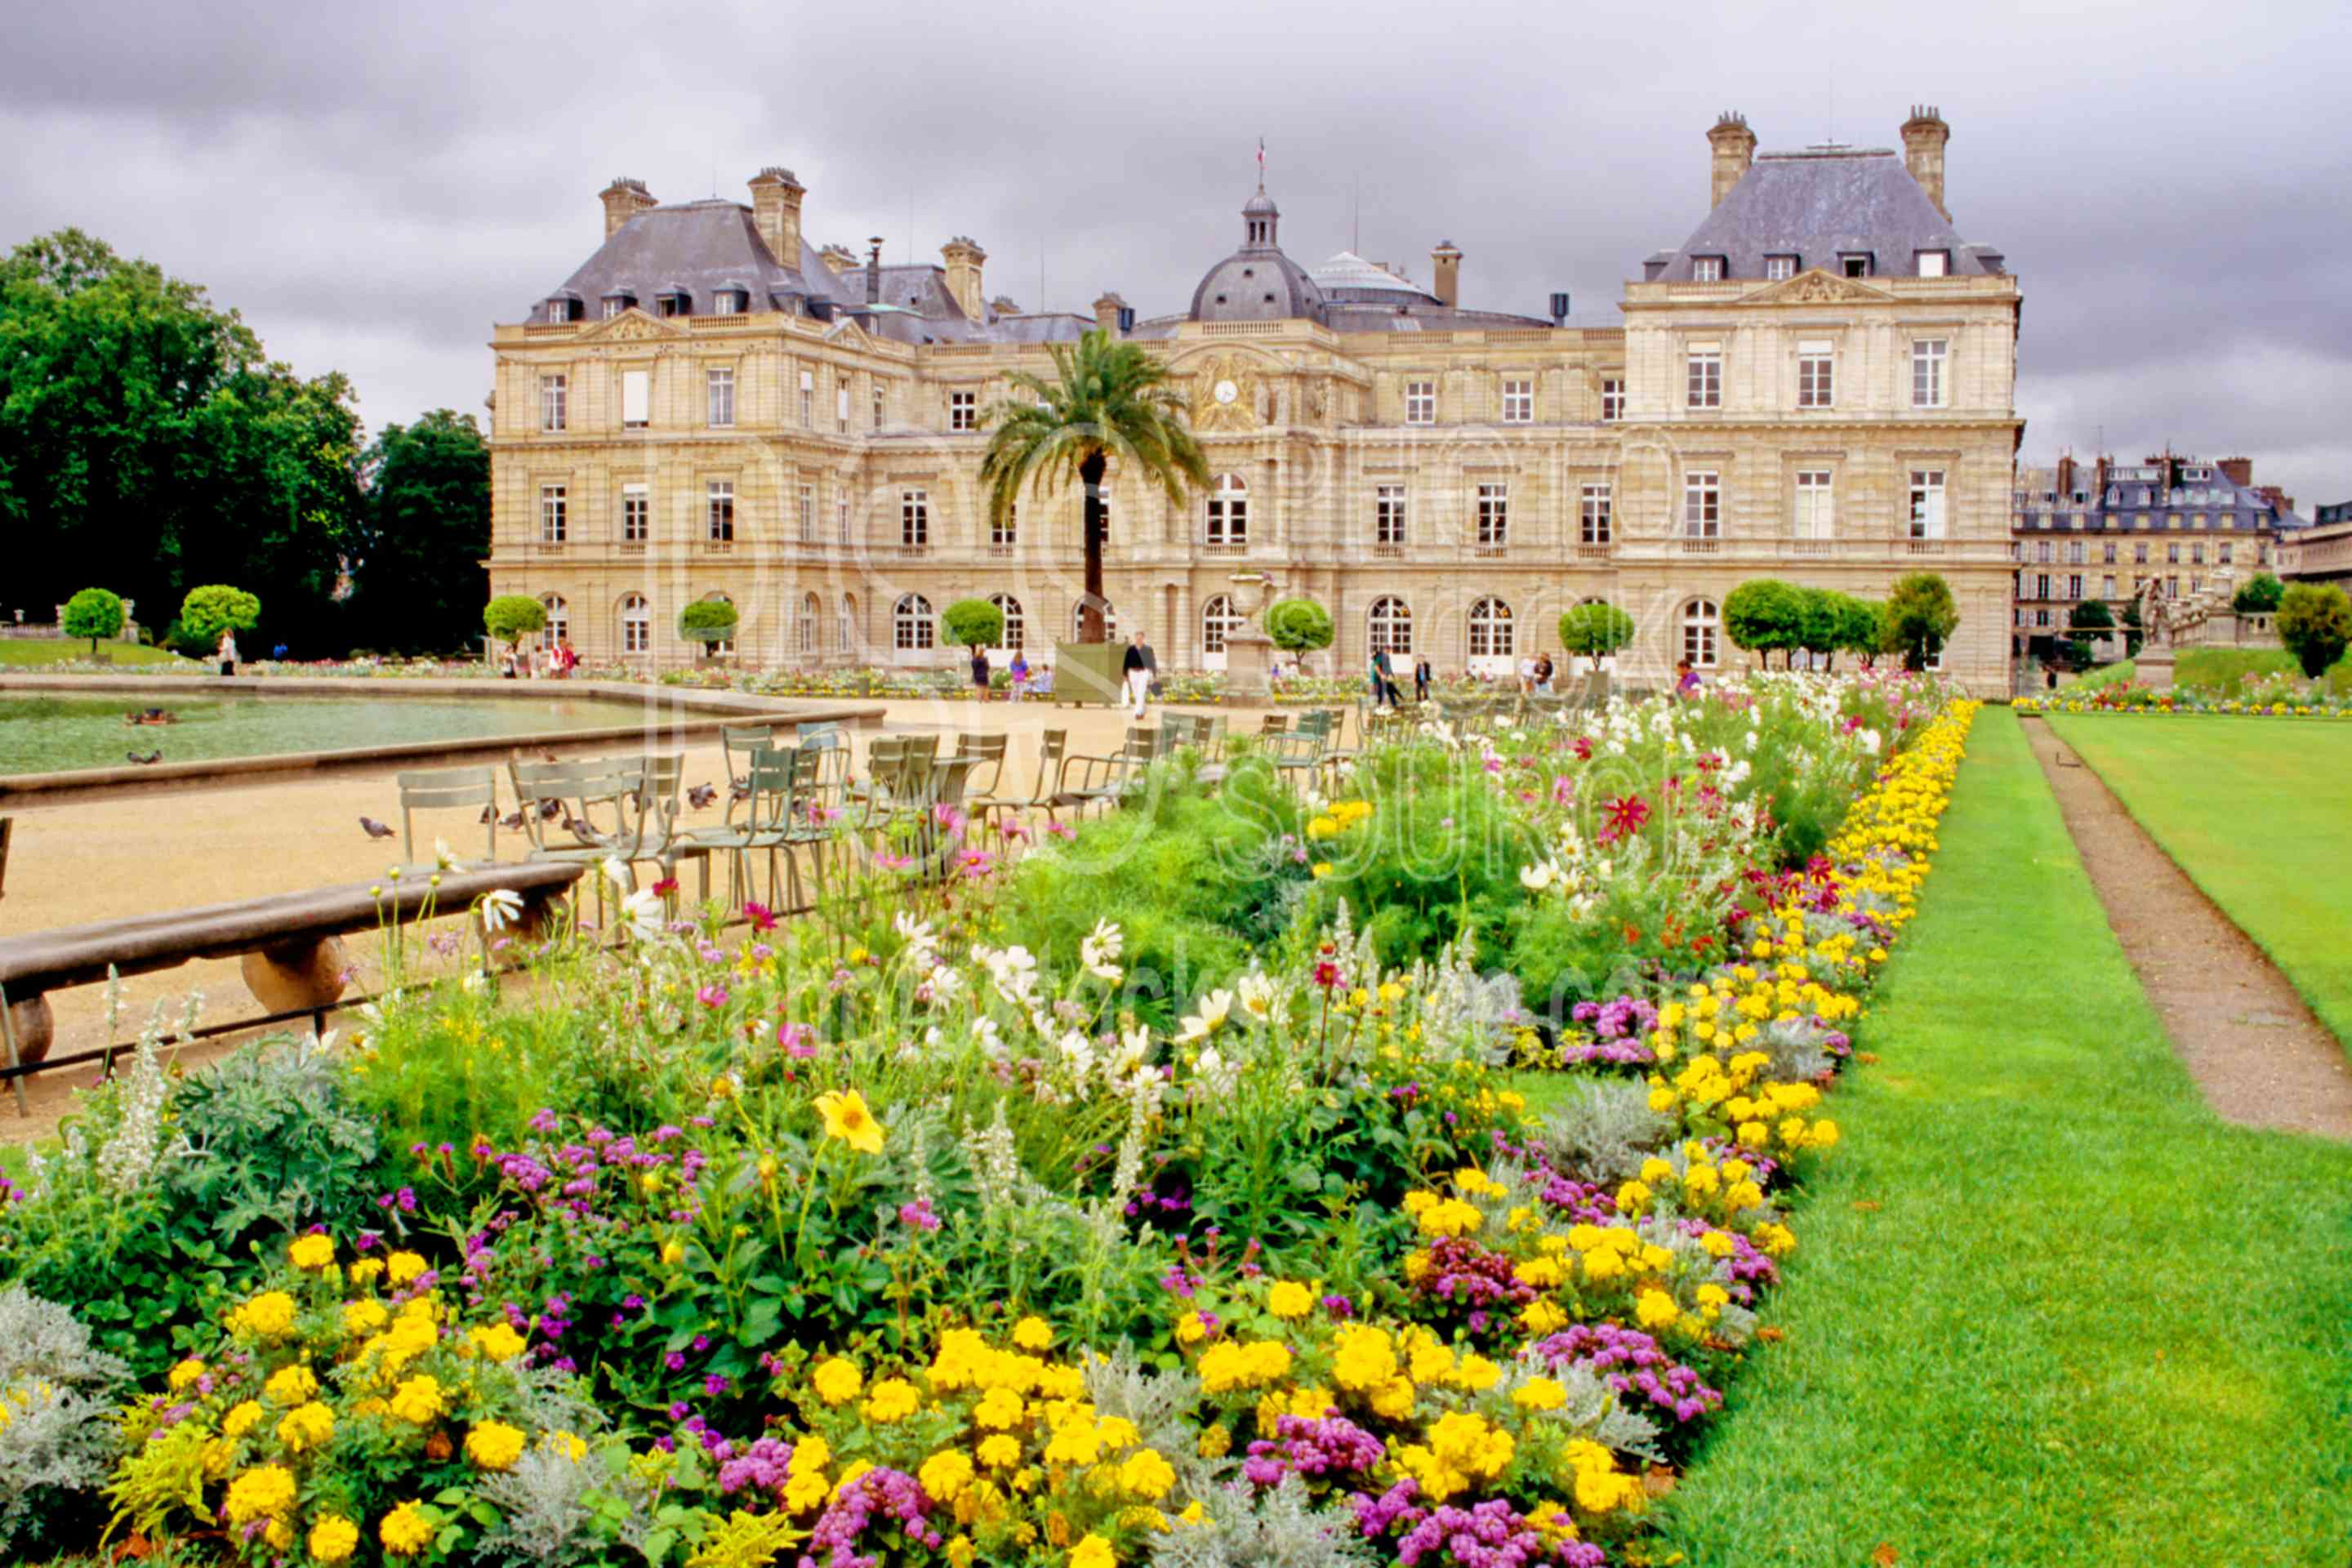 Photo Of Luxembourg Gardens By Photo Stock Source Flower